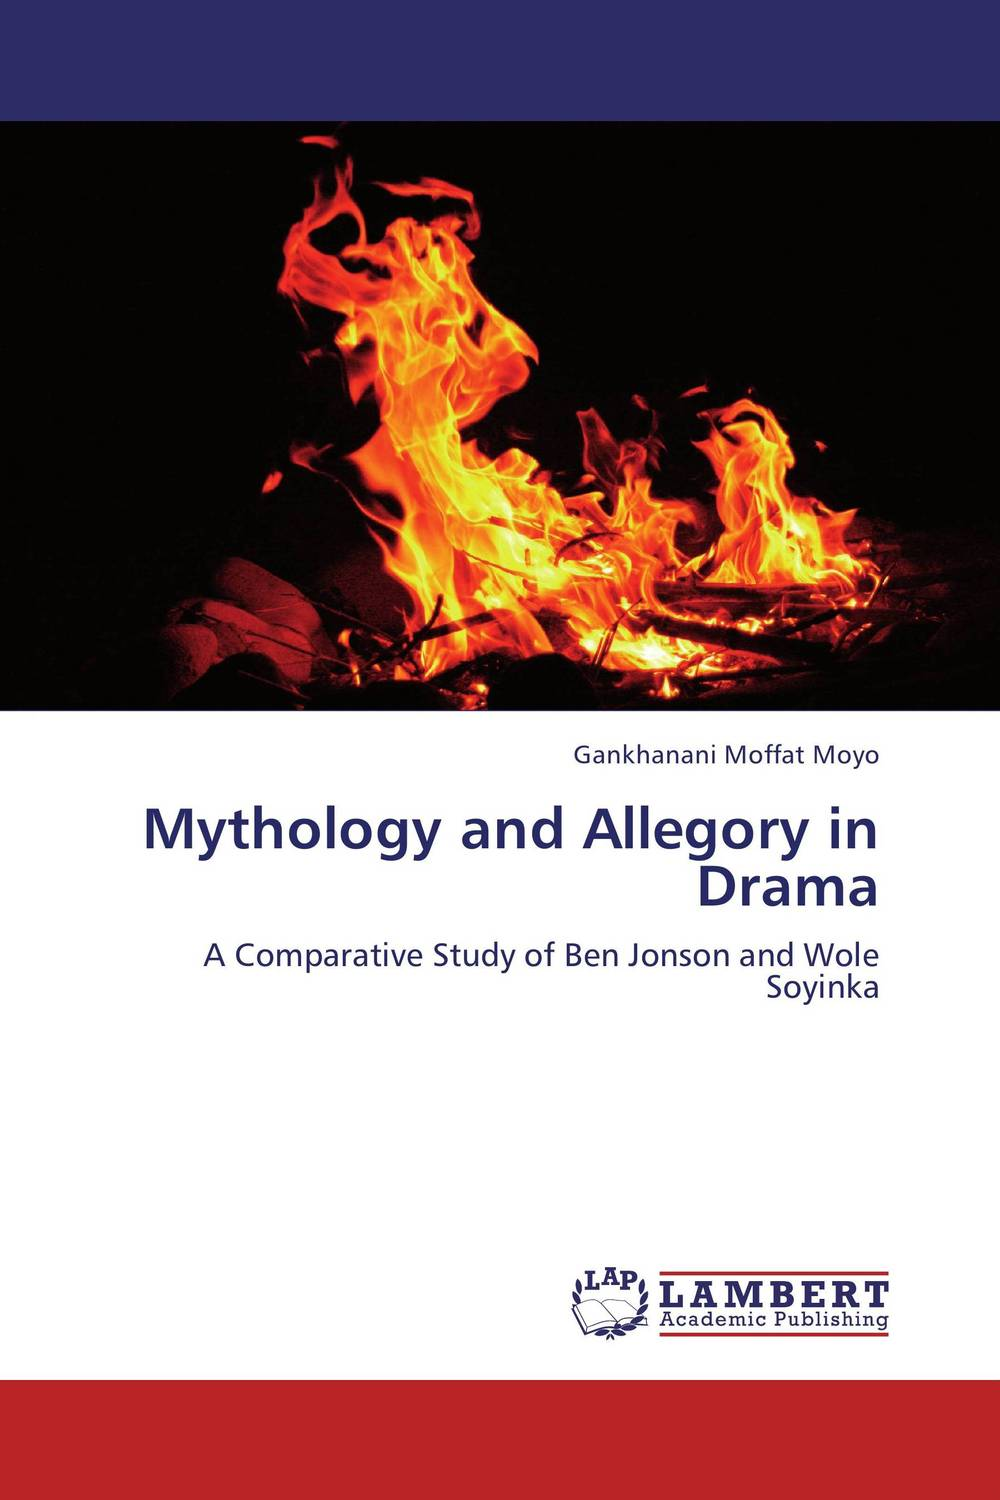 Mythology and Allegory in Drama smith dictionary of greek and roman biography and mythology 2 part set